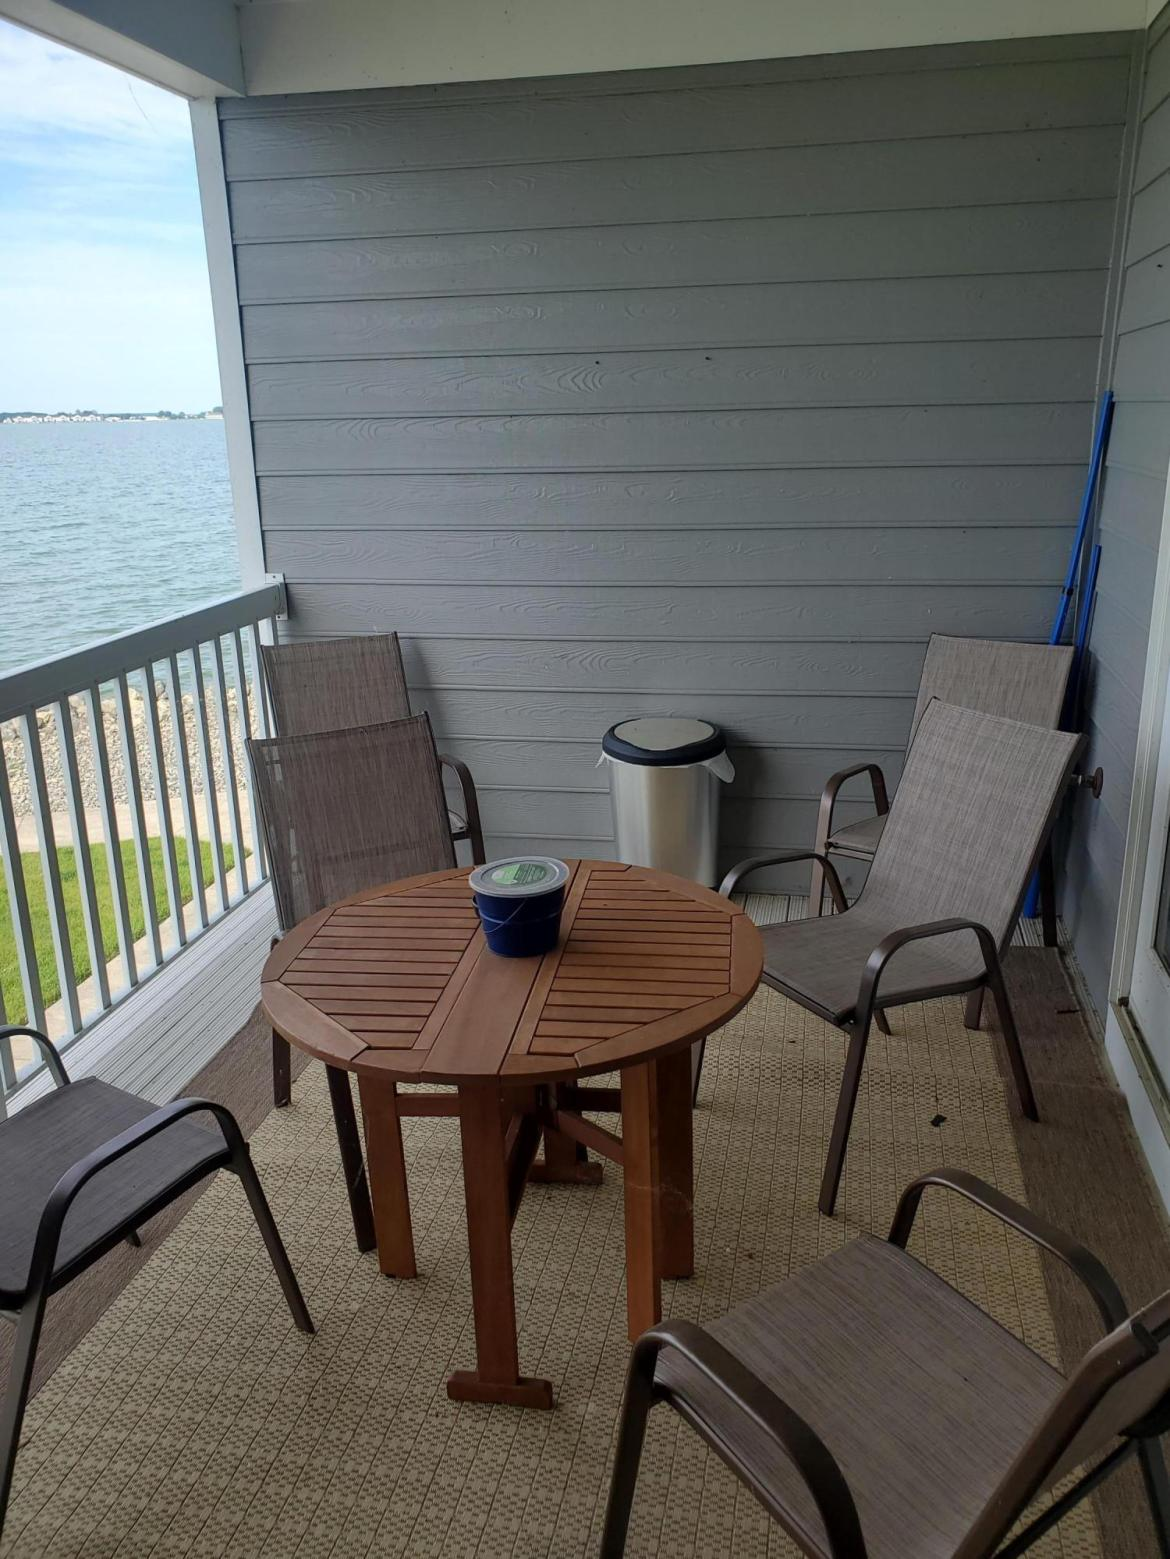 Beautiful LAKE VIEW 3 bed/2 bath Condo at Windemere Bay Condominiums! Completely updated with open concept floor plan and plentiful windows. Appliances are included. Enjoy lake view off main living area and the master bedroom. Head outside to the convenient boat dock or to the community pool. Condo fees are $240.00 per month and include pool, trash, snow removal, and outside maintenance. maintenance included in condo fee. Call today for a private tour and start relaxing at the Lake.